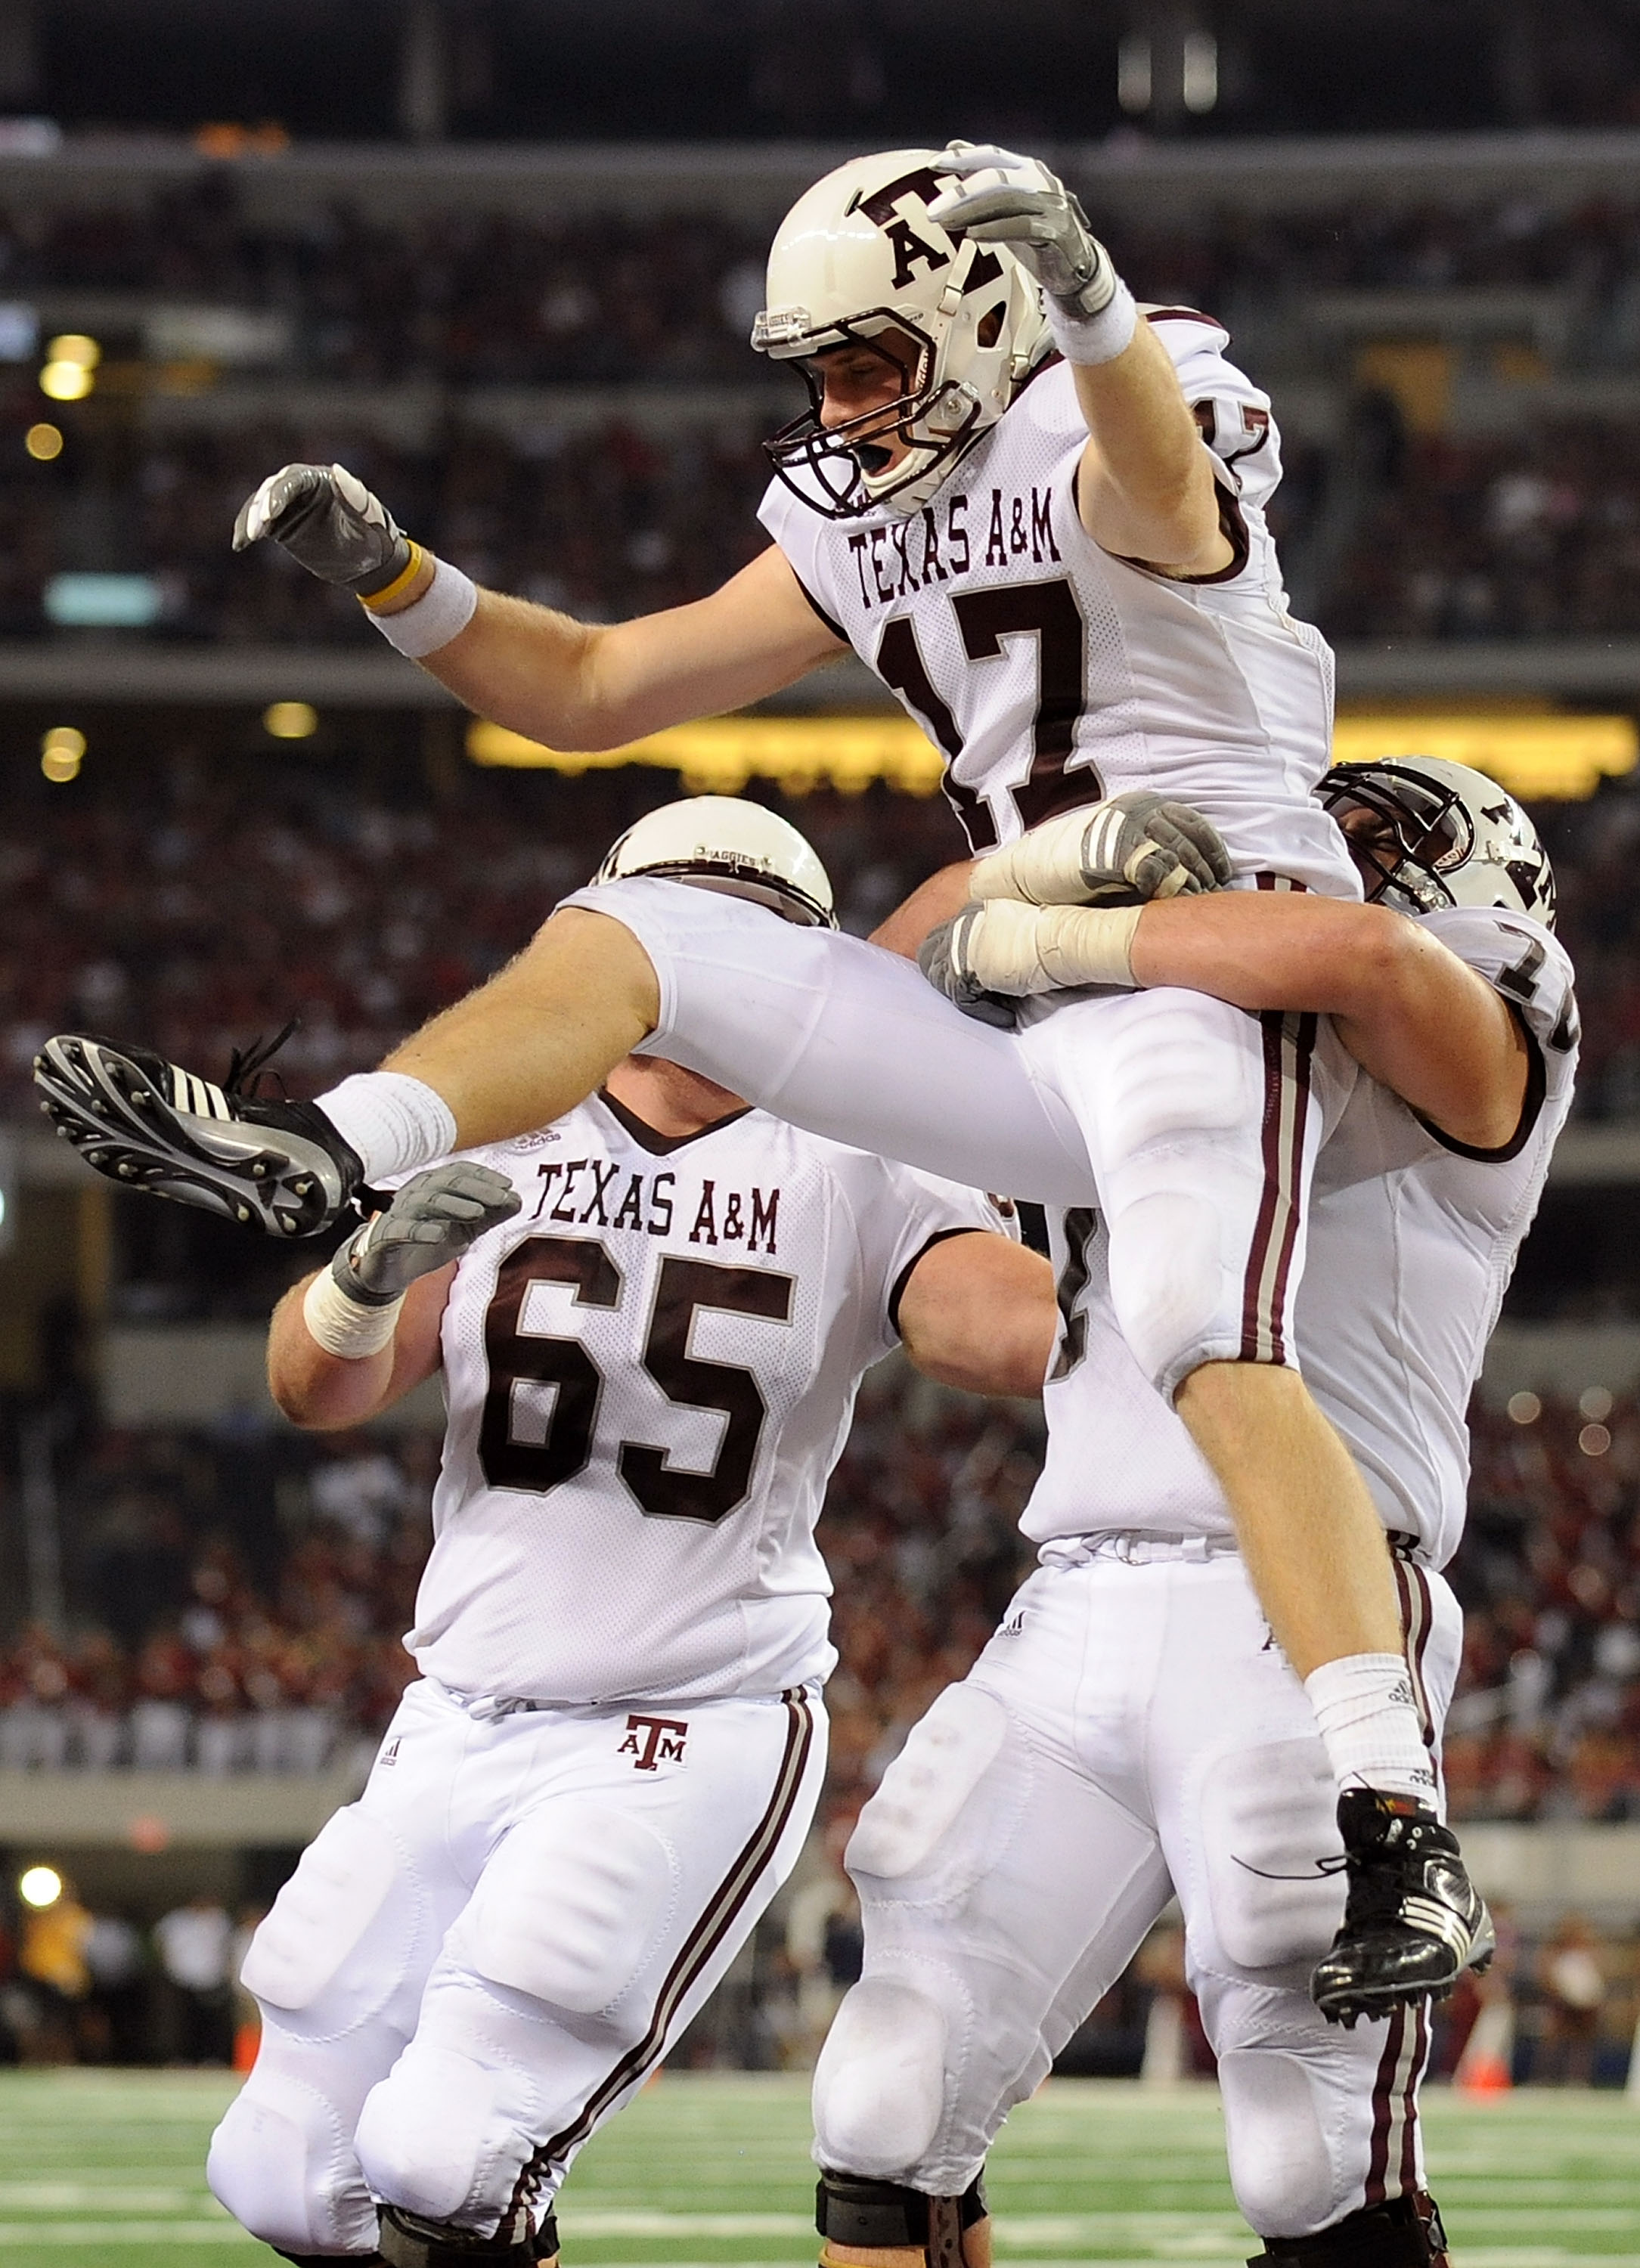 ARLINGTON, TX - OCTOBER 03:  Wide receiver Ryan Tannehill #17 celebrates a touchdown with Matt Allen #70 of the Texas A&M Aggies against the Arkansas Razorbacks at Cowboys Stadium on October 3, 2009 in Arlington, Texas.  (Photo by Ronald Martinez/Getty Im